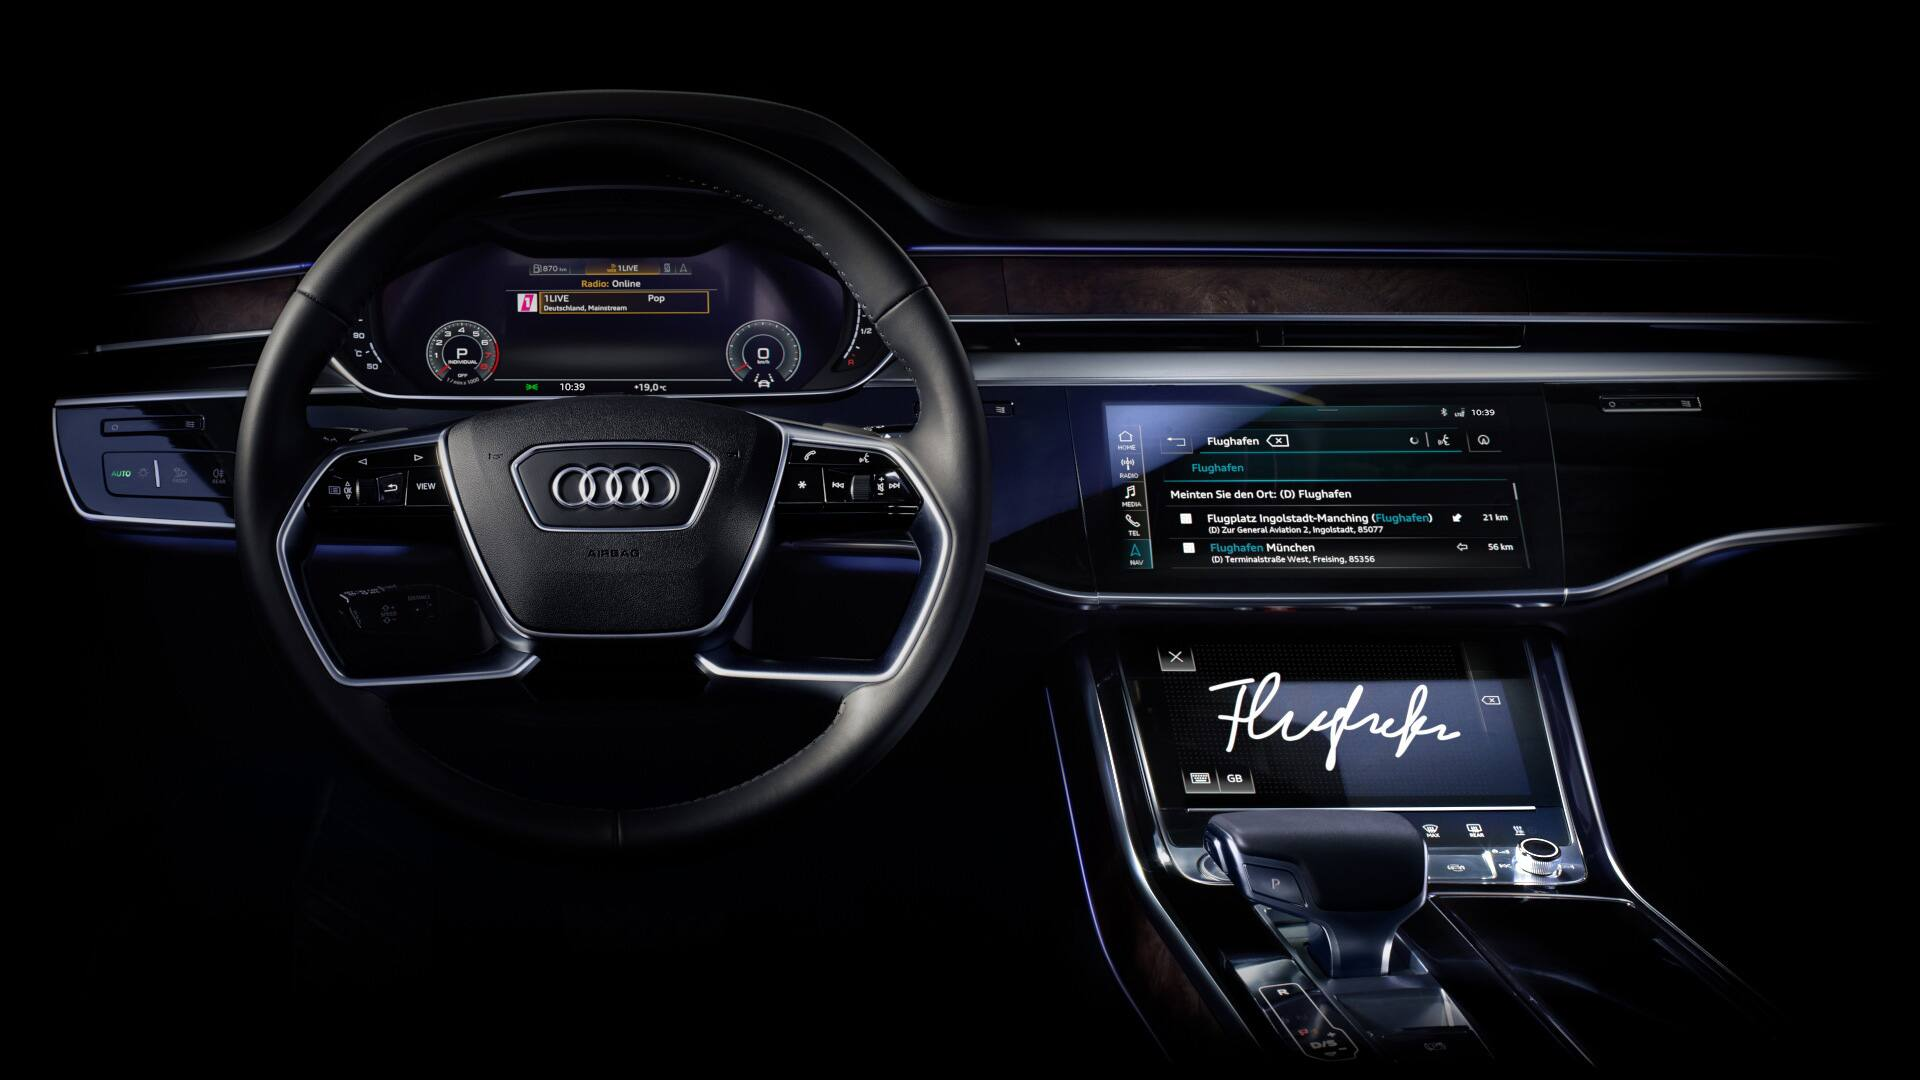 A new operating experience: Touch displays with haptic feedback in the new Audi A8.